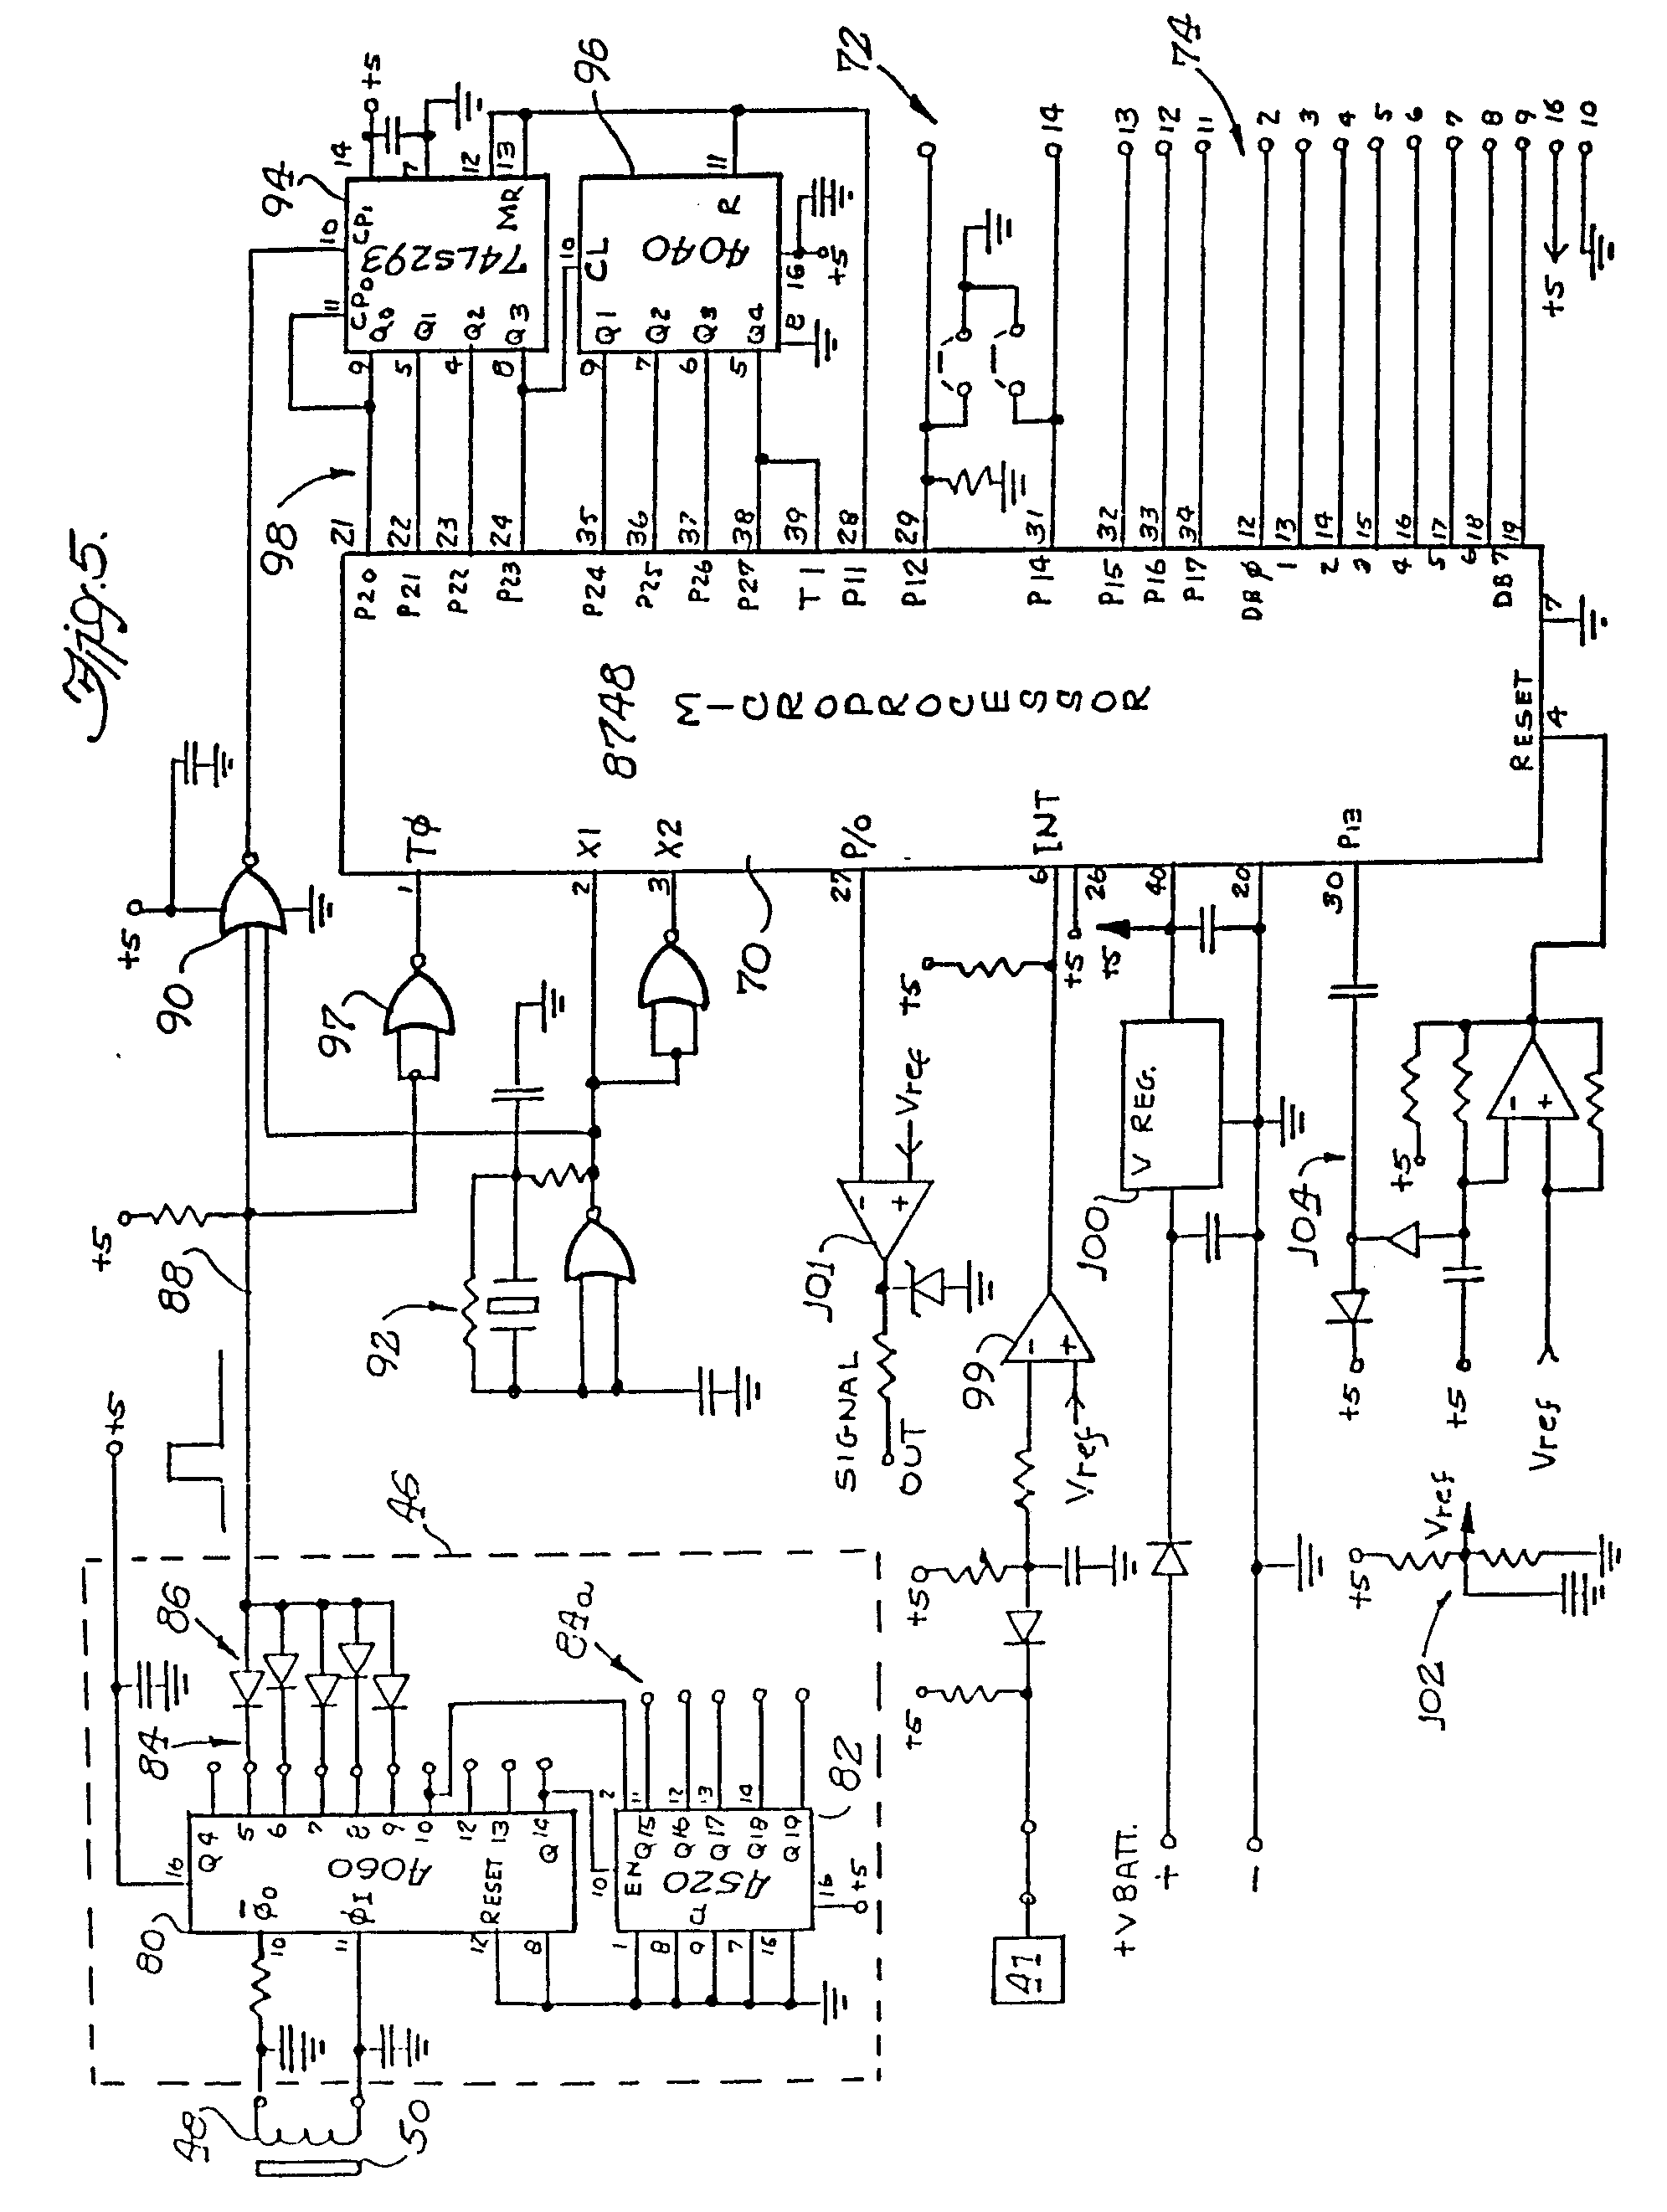 600 ford tractor generator wiring diagram ford 8n generator diagram tractor wiring 12 volt in ... 8n ford tractor ignition wiring diagram #14